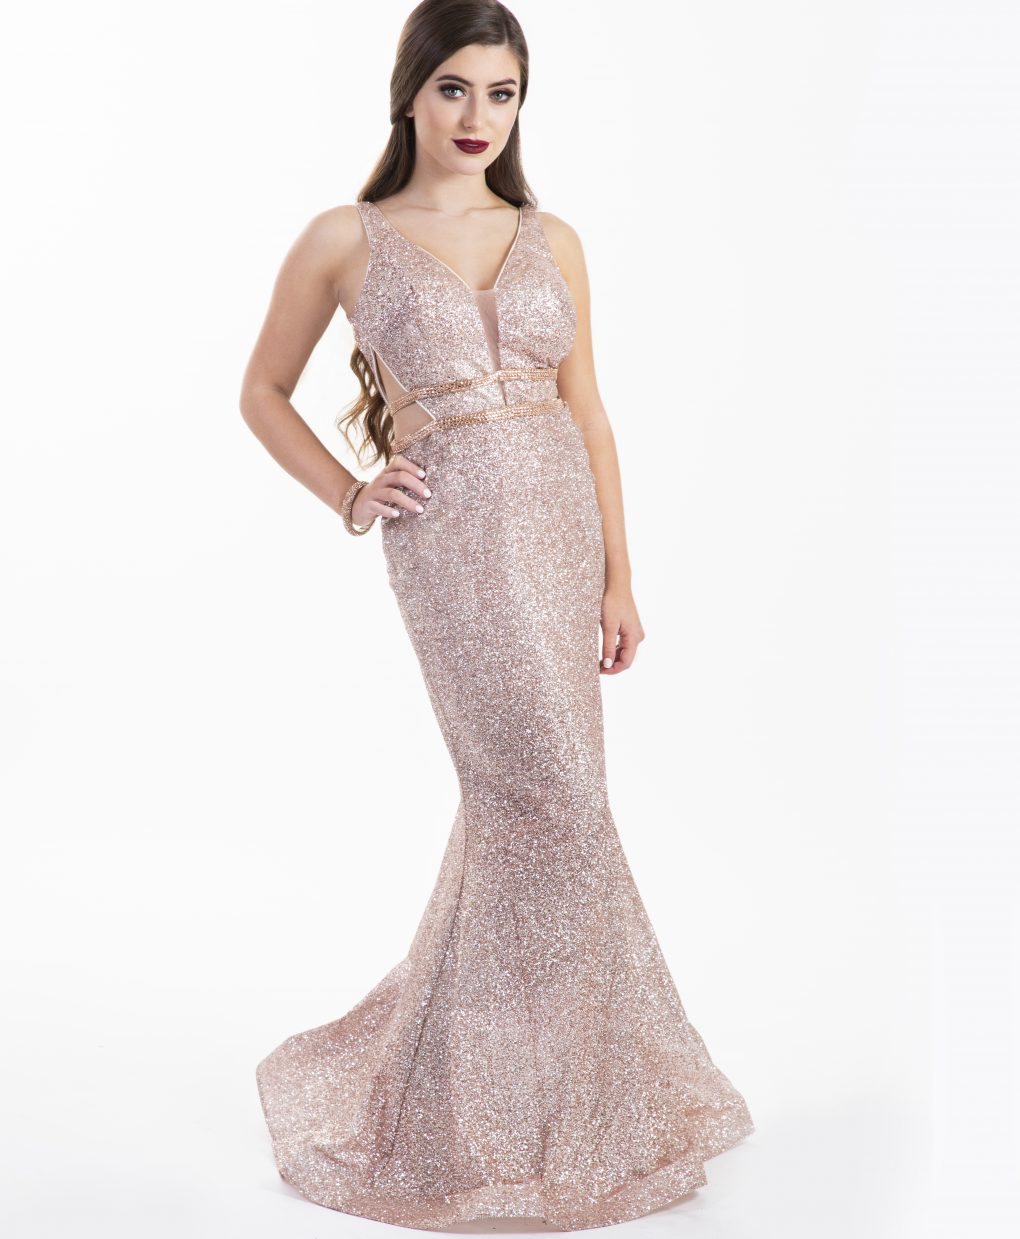 Chloe Ormond Rose Gold Glitter Cut Out Gown Alila